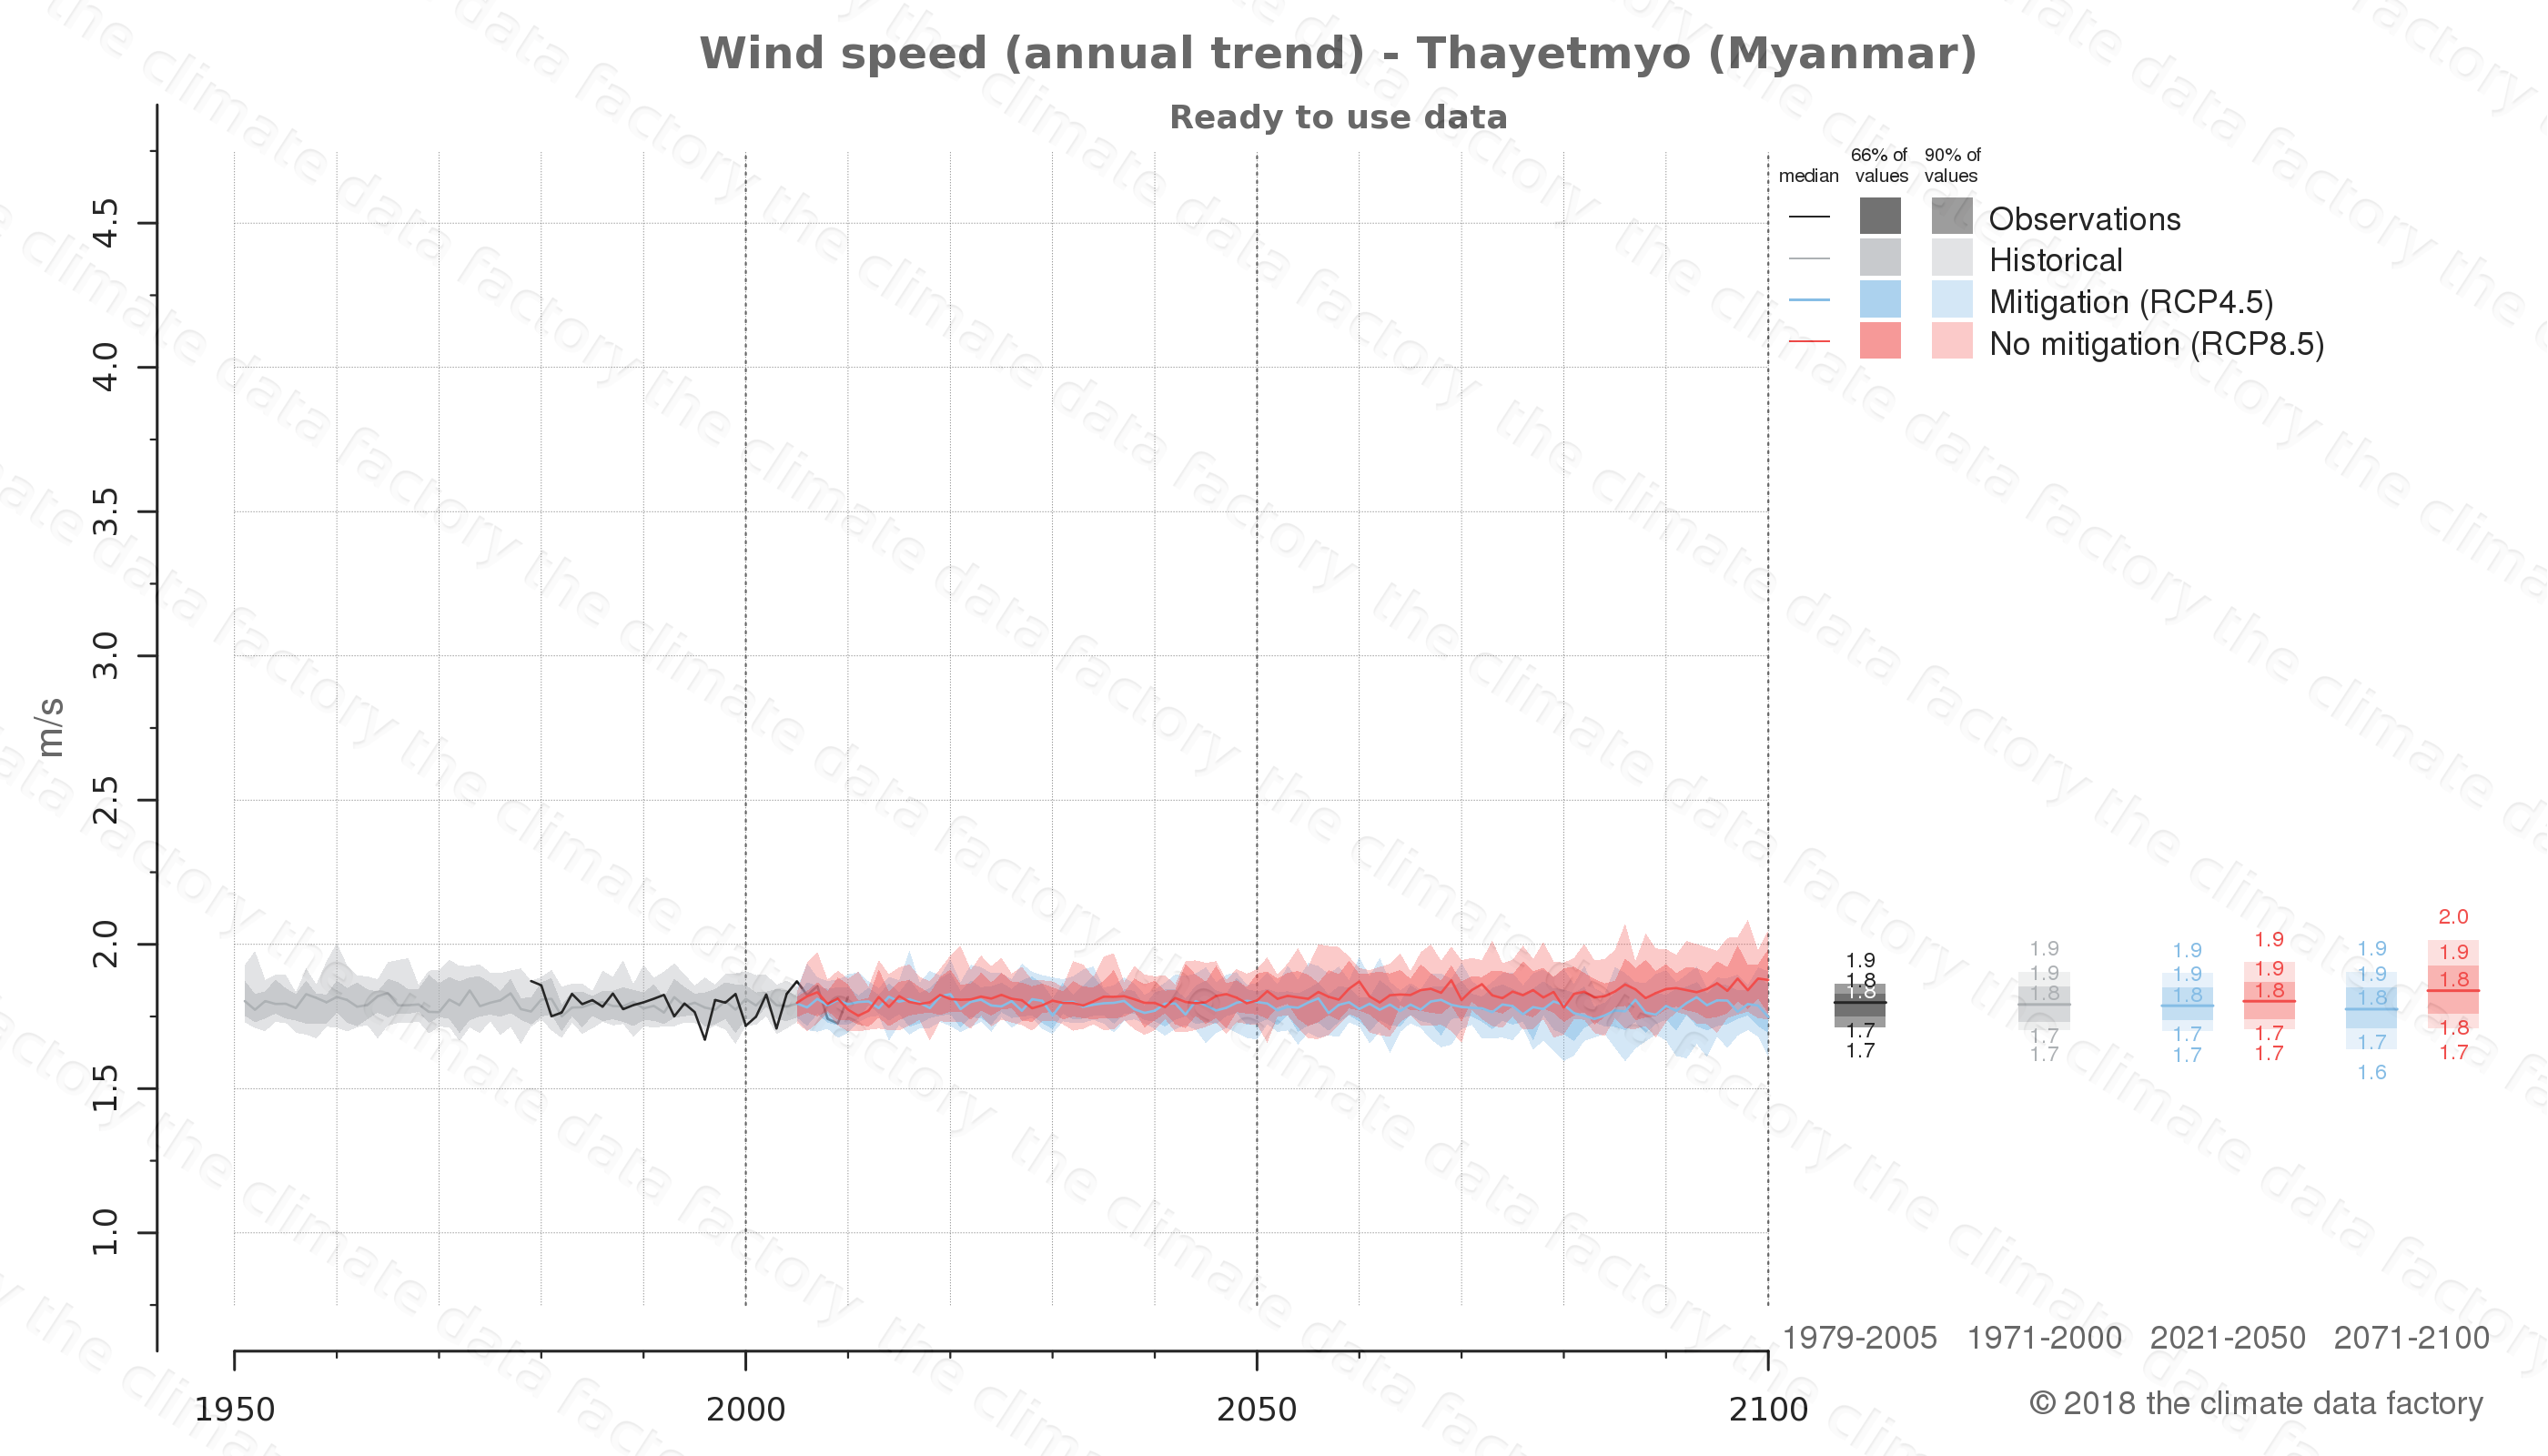 climate change data policy adaptation climate graph city data wind-speed thayetmyo myanmar